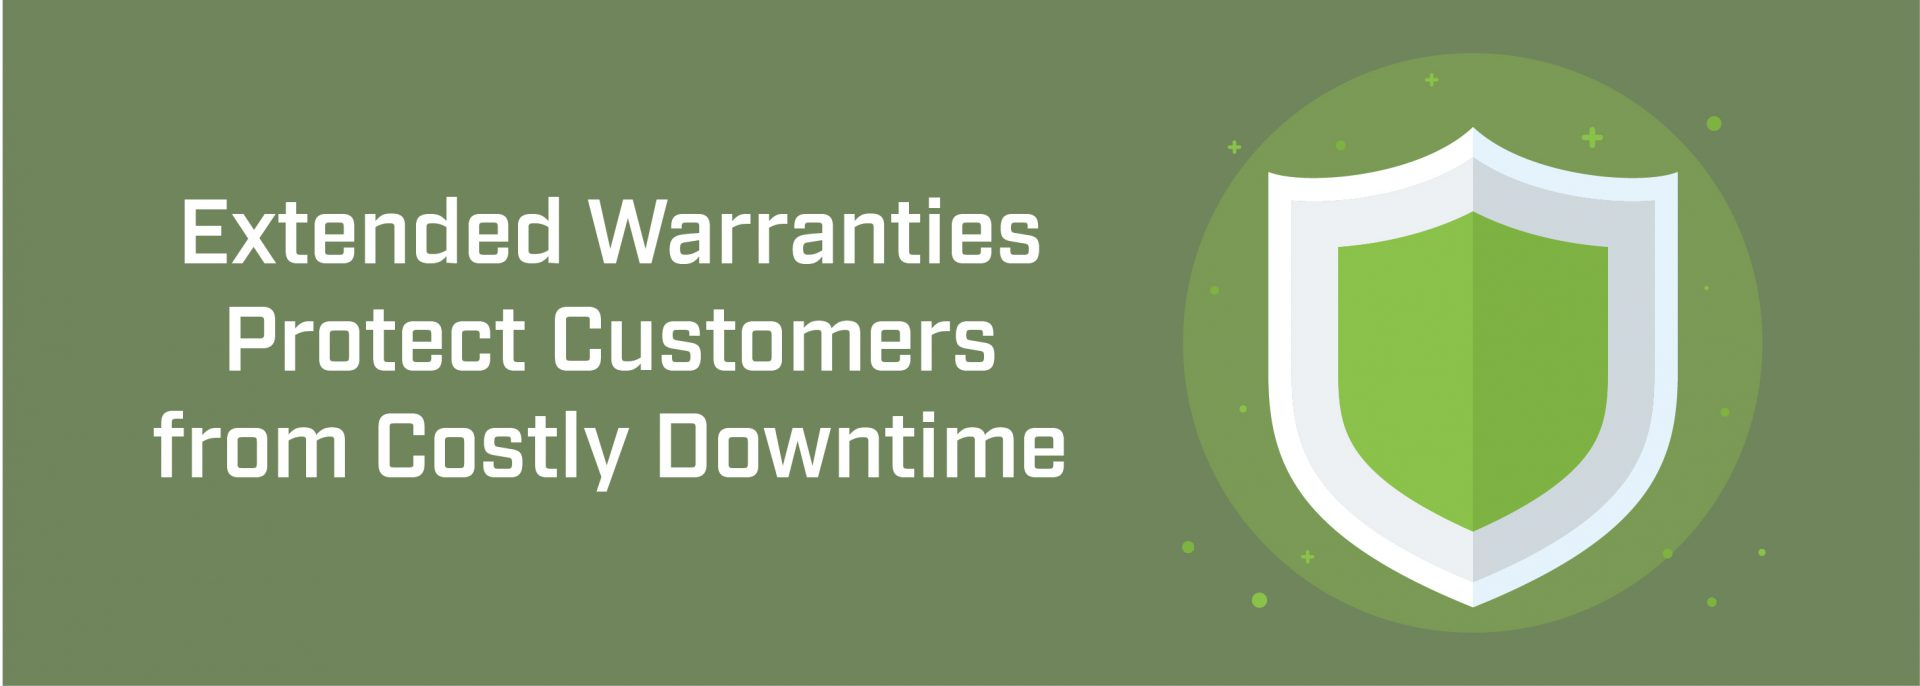 Extended Warranties Protect Customers from Costly Downtime   ADI Agency